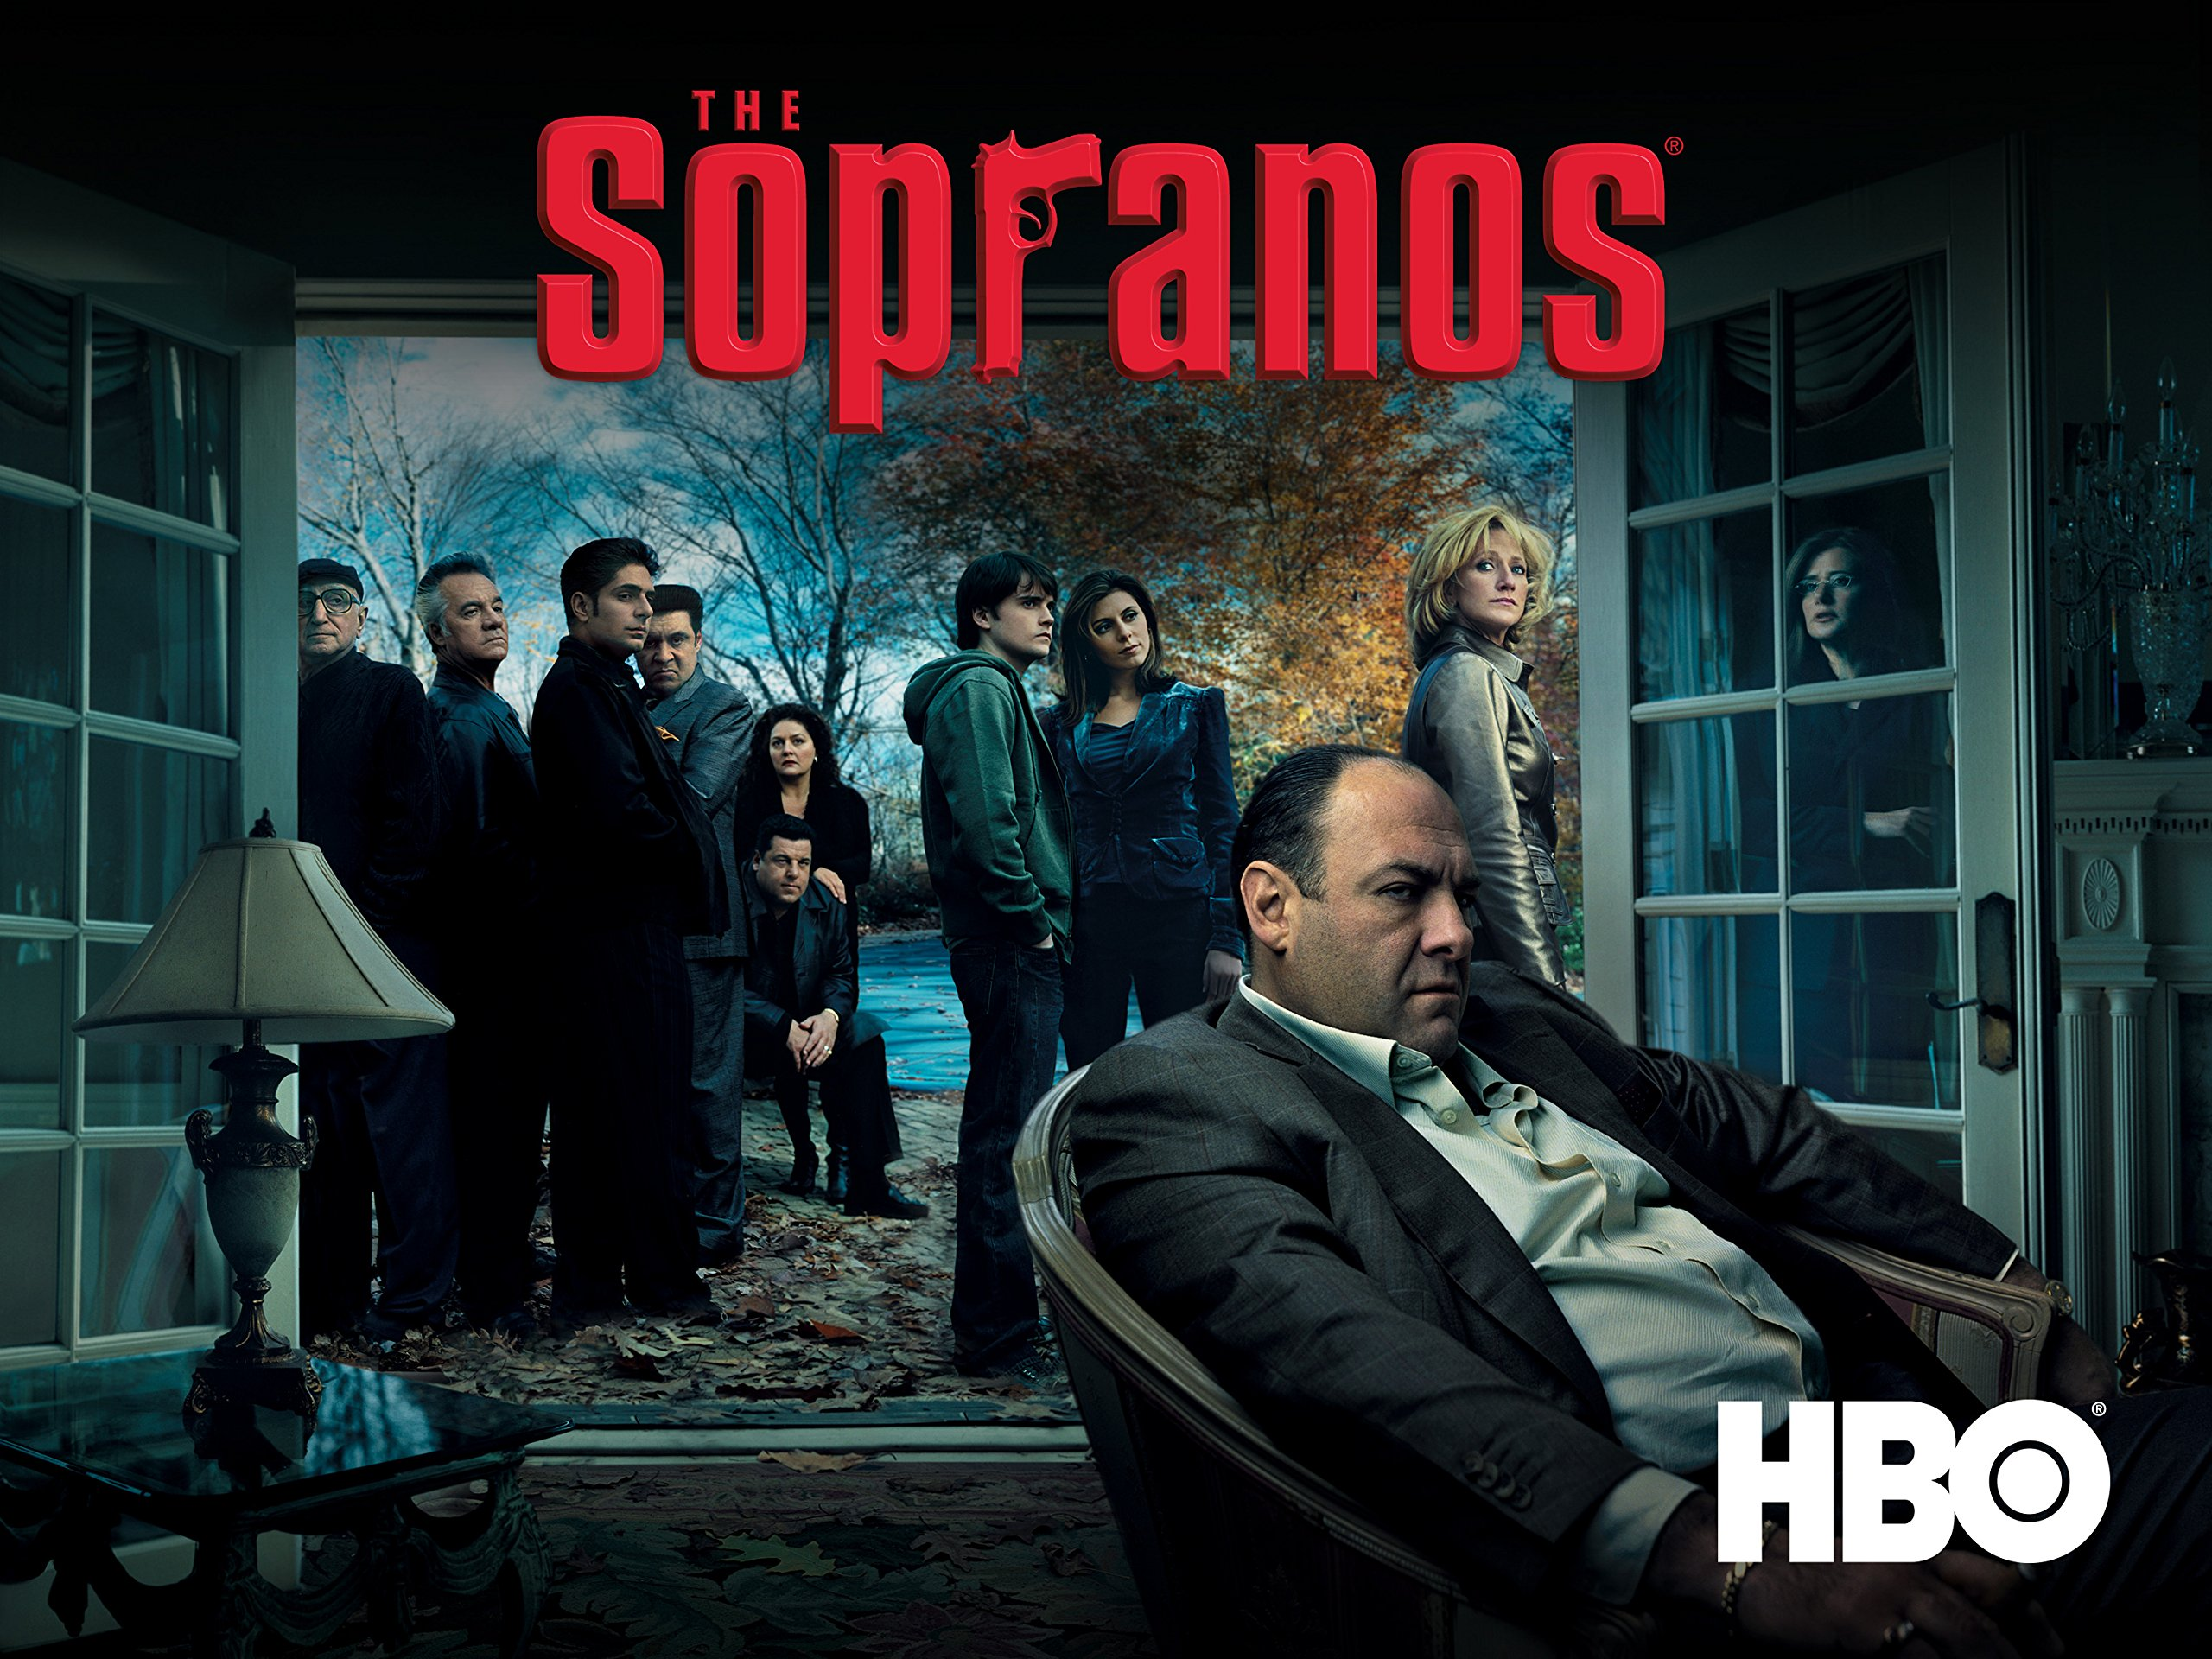 Amazon.com: Watch The Sopranos: Season 1 | Prime Video